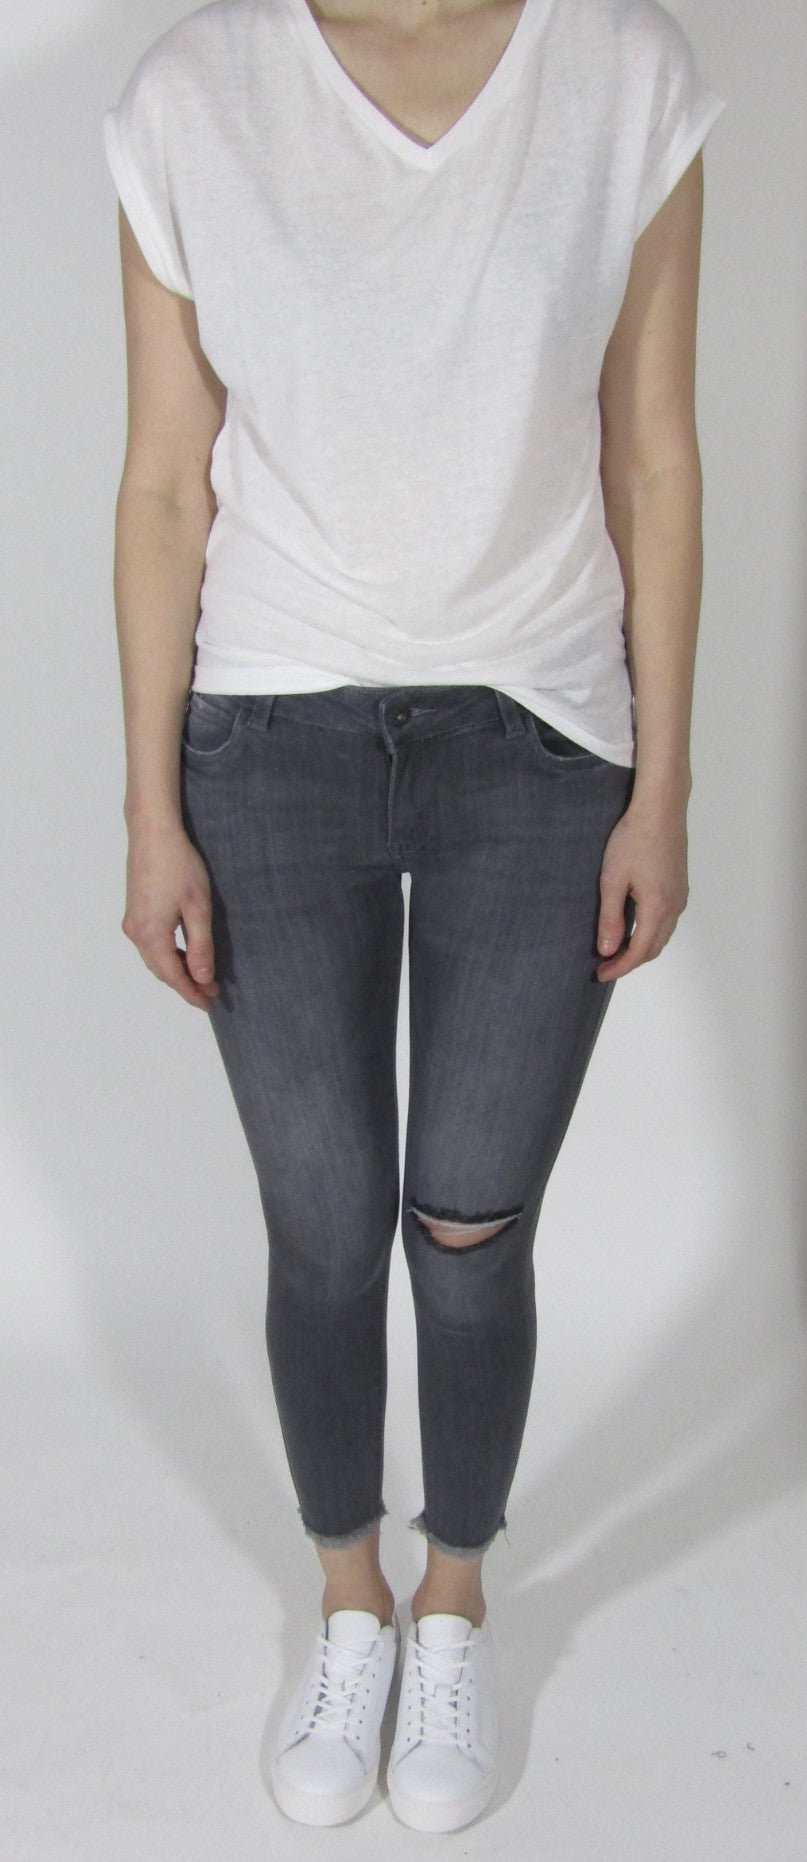 Queen Heart Jeans Grey